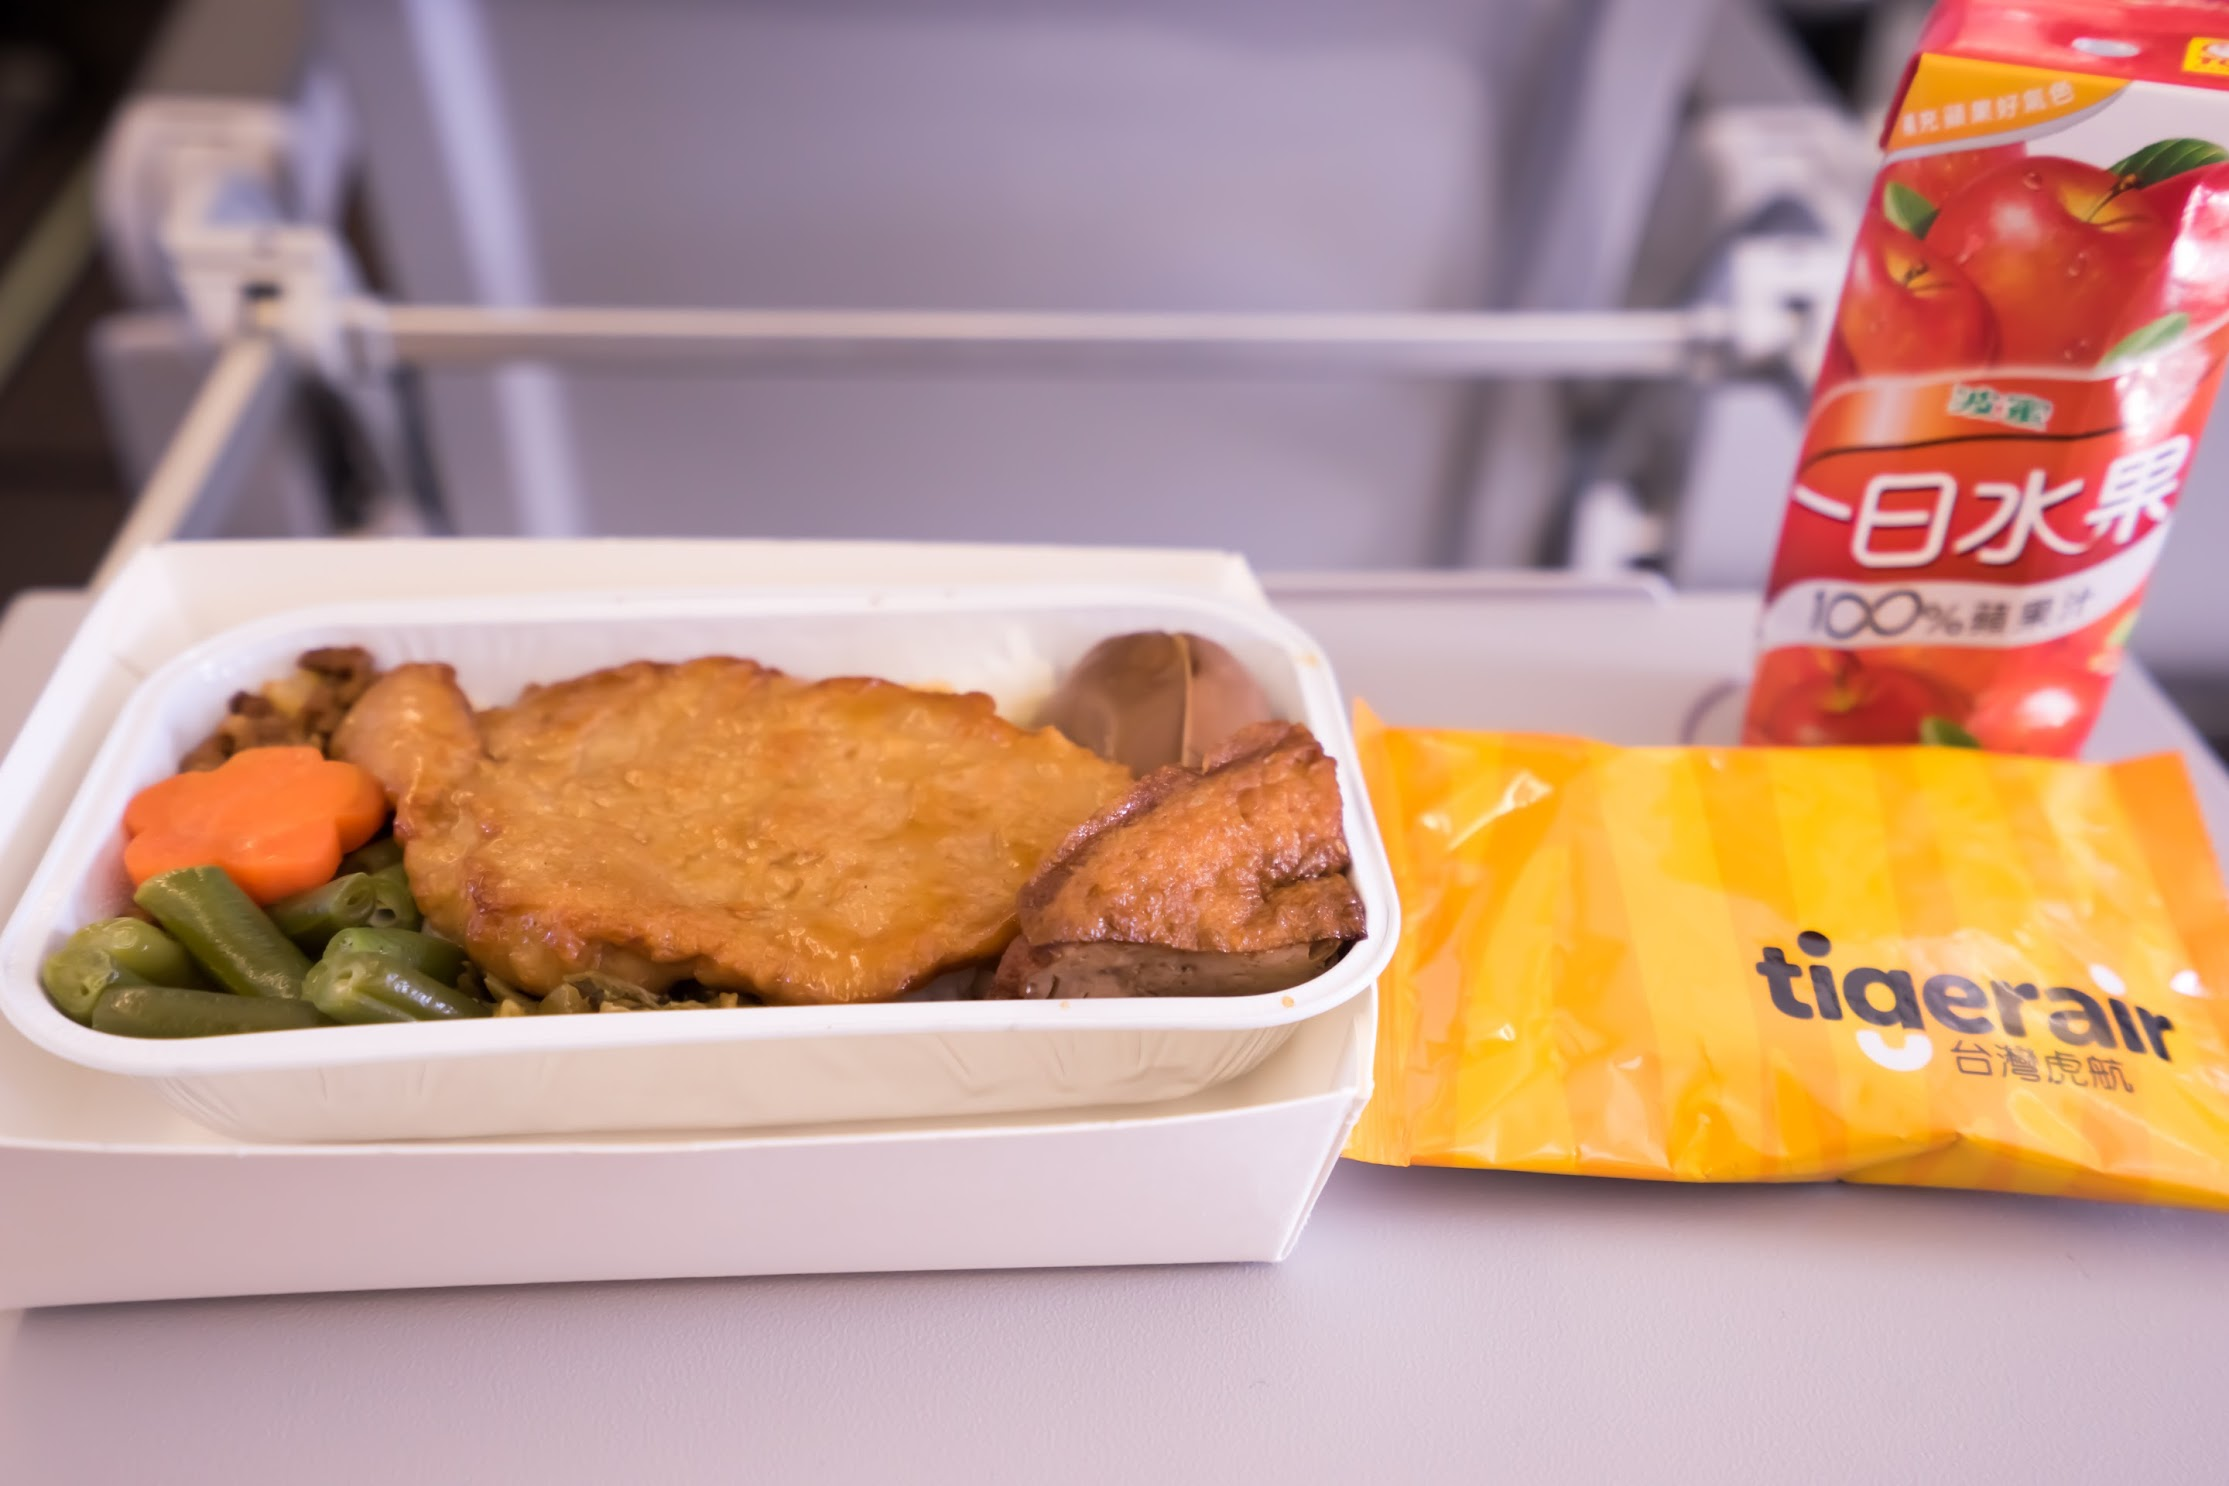 Tigerair Taiwan Braised Pork Chop